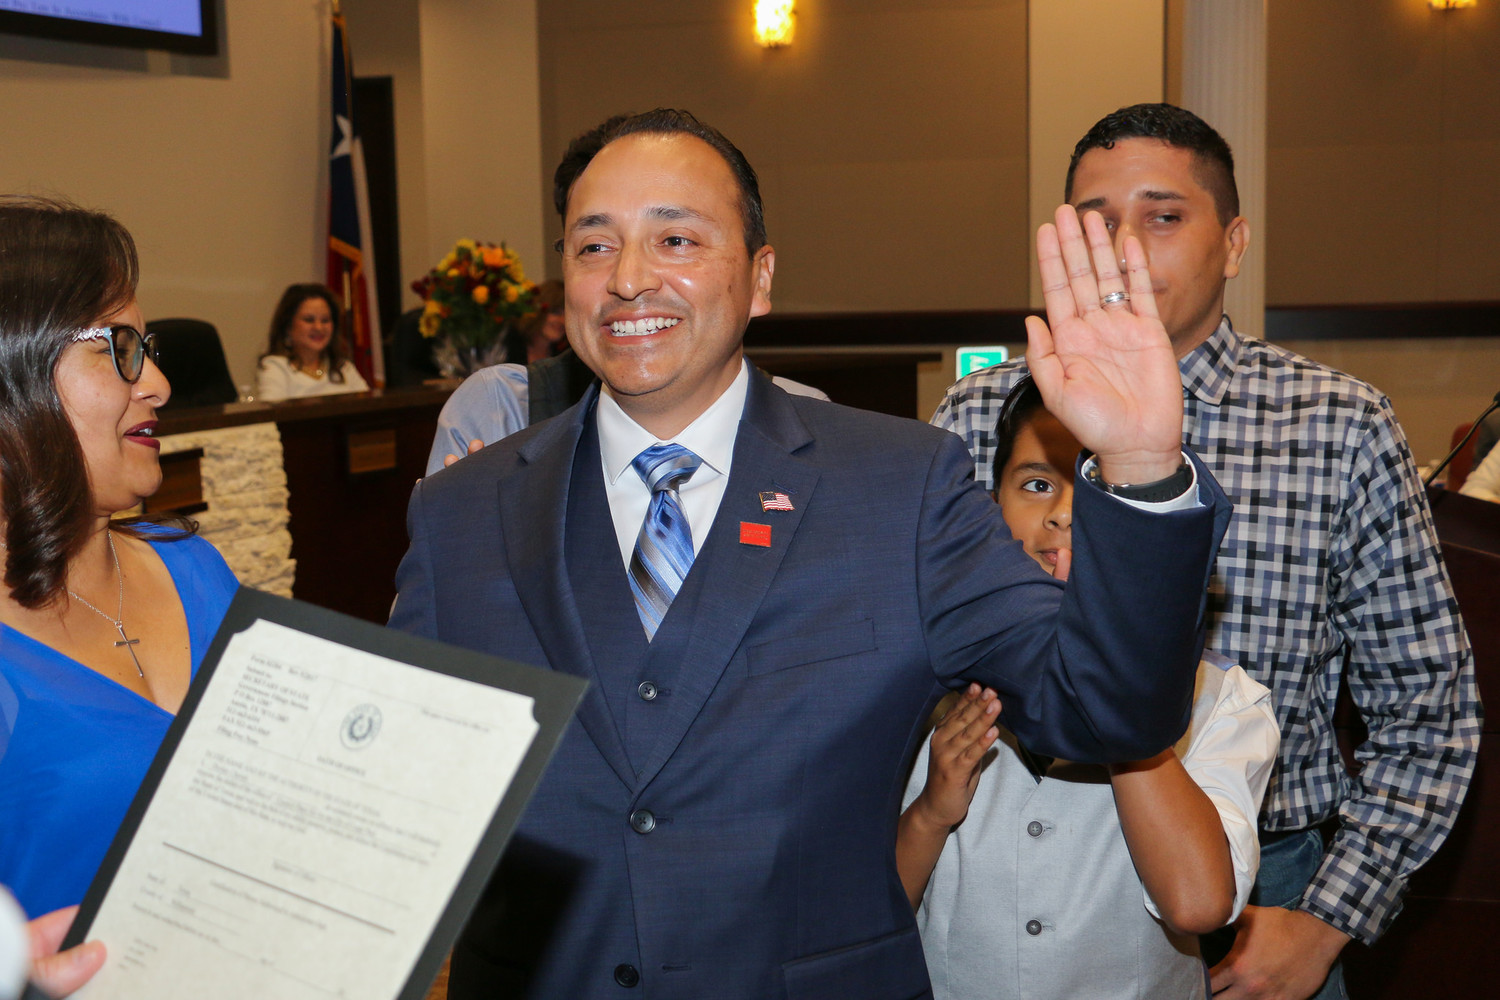 Newly-elected Place 6 council member Dorian Chavez is sworn in during the May 24, 2018 Cedar Park city council meeting.